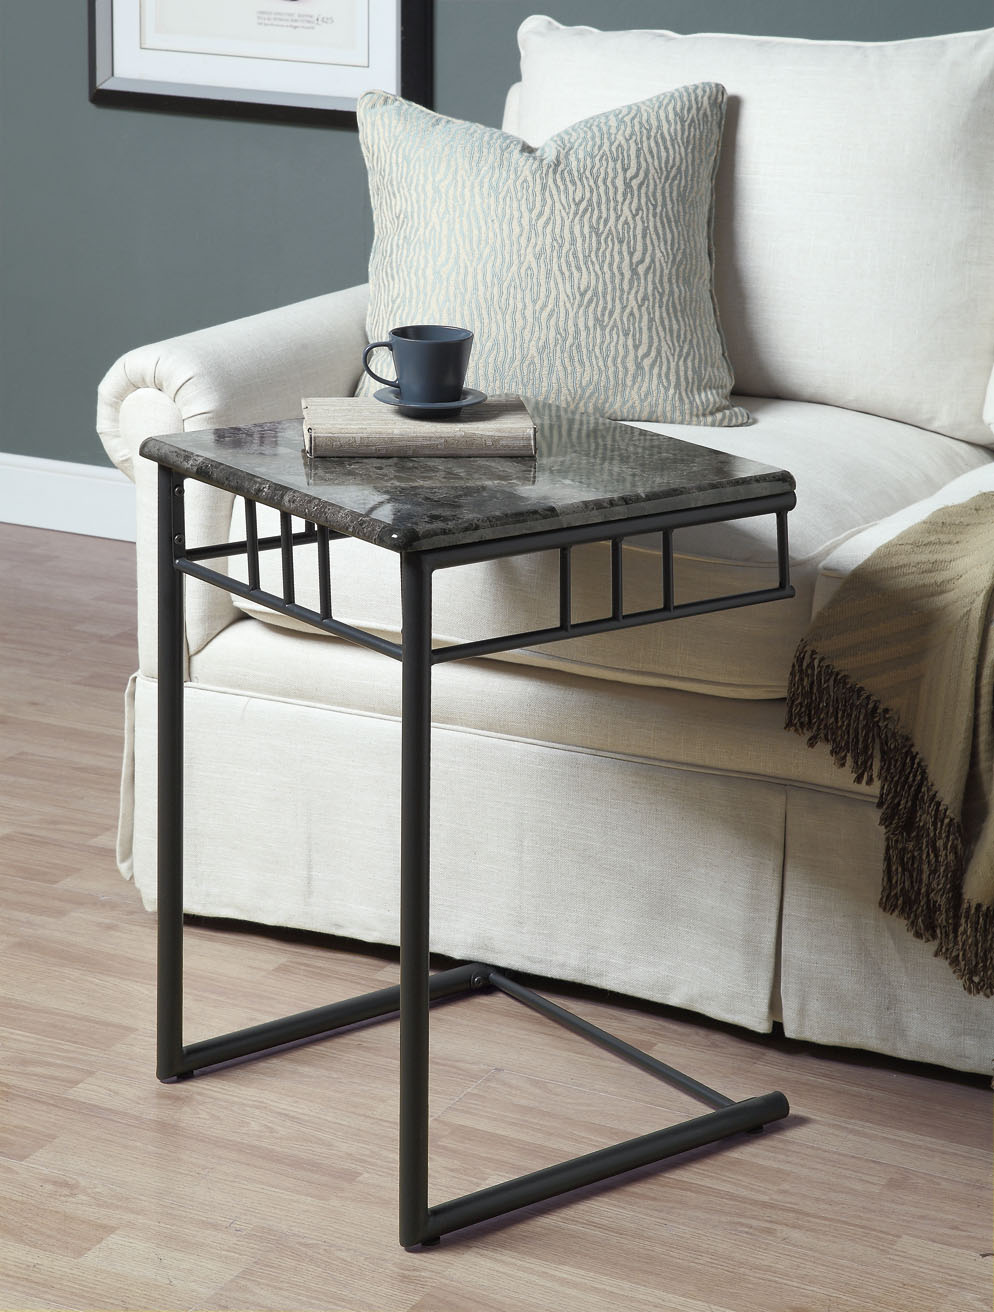 Furniture Living Room Furniture Table Gray Charcoal Tables